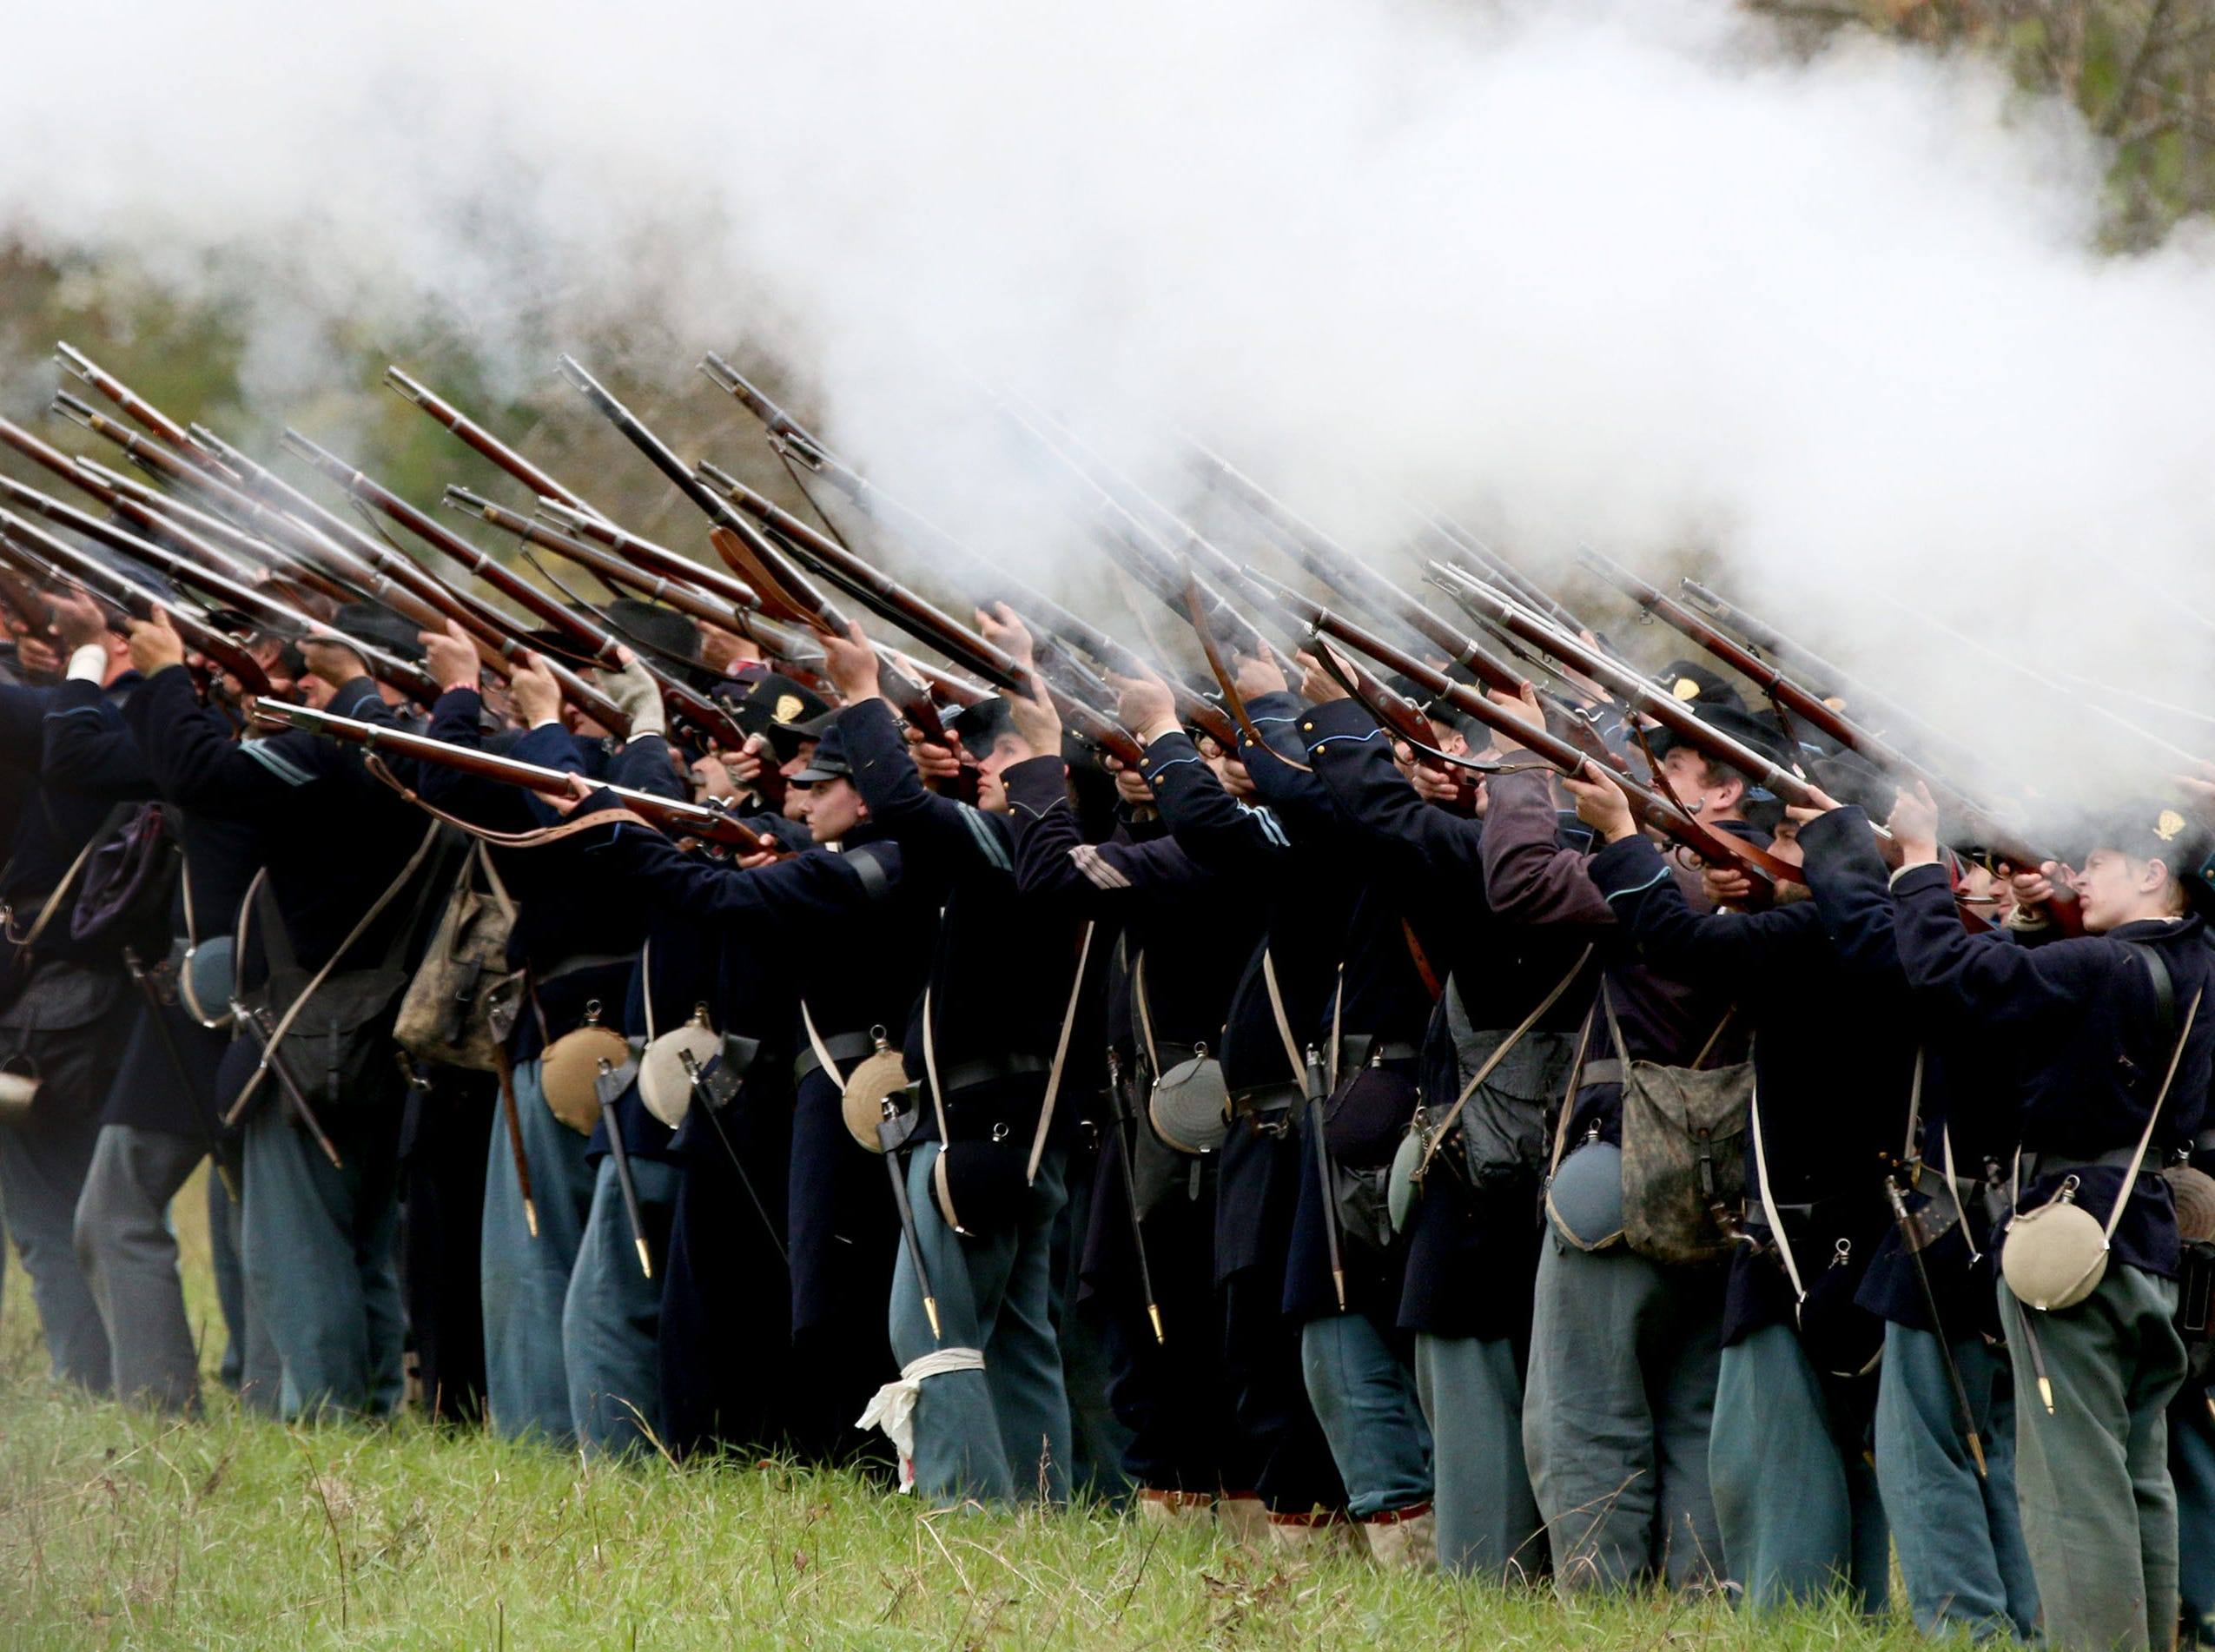 Union soldiers fire their weapons during the Civil War Weekend at the Wade House, Saturday September 29, 2018, in Greenbush, Wis.